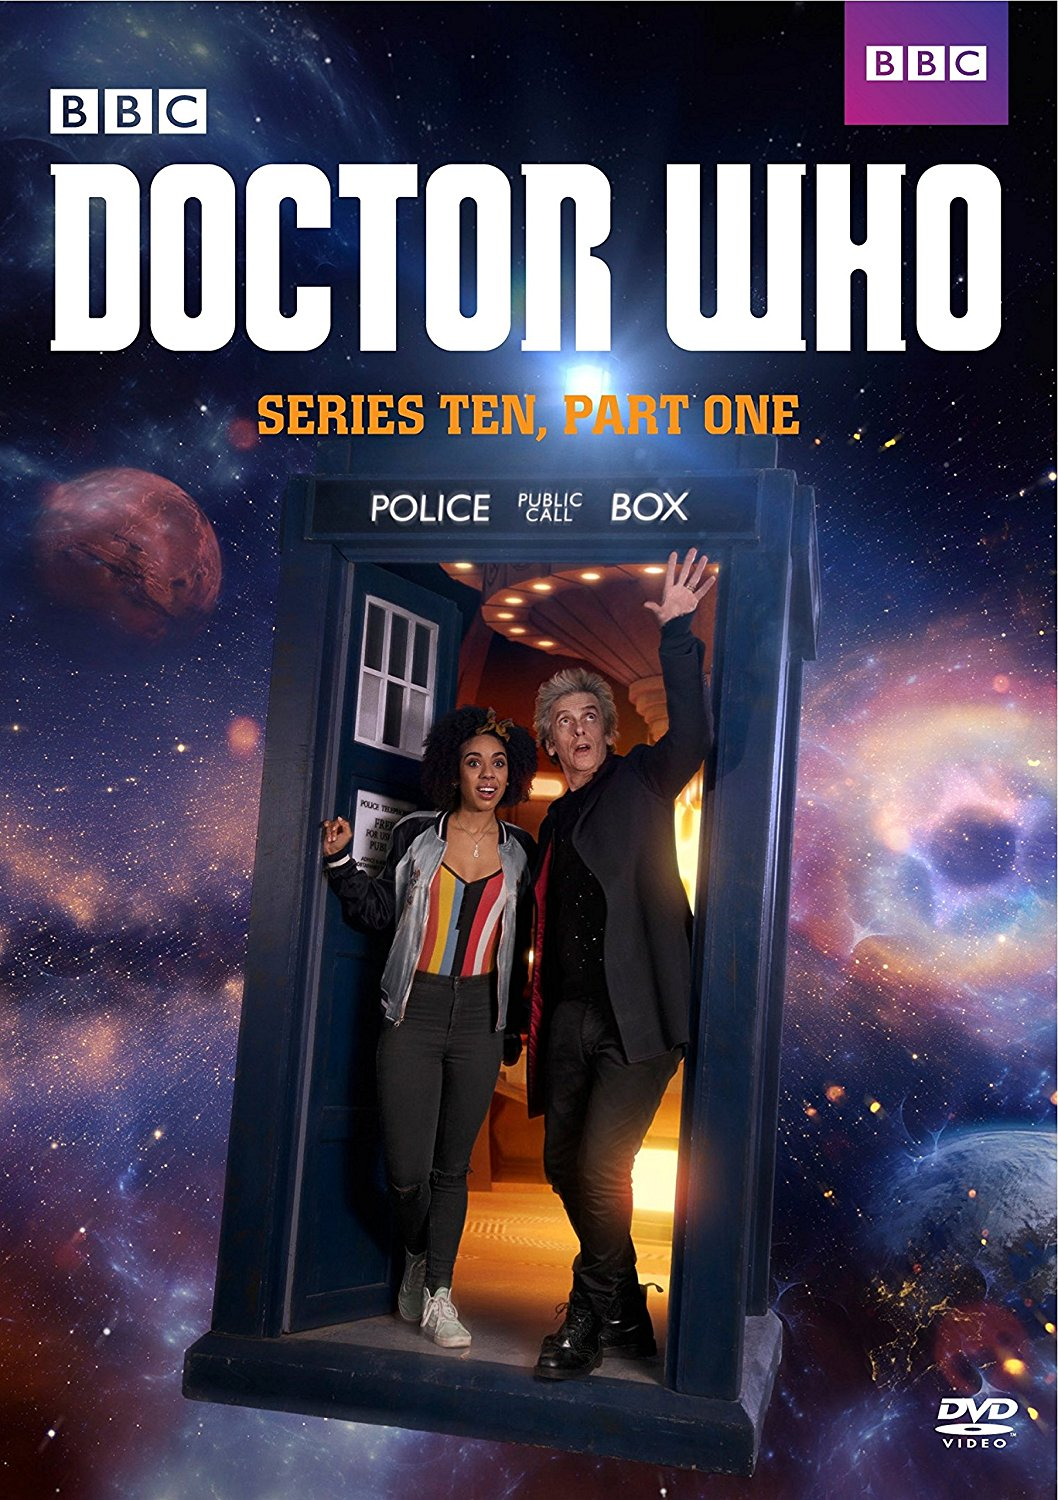 Doctor Who Series 10 (Ten), Part 1 DVD Set